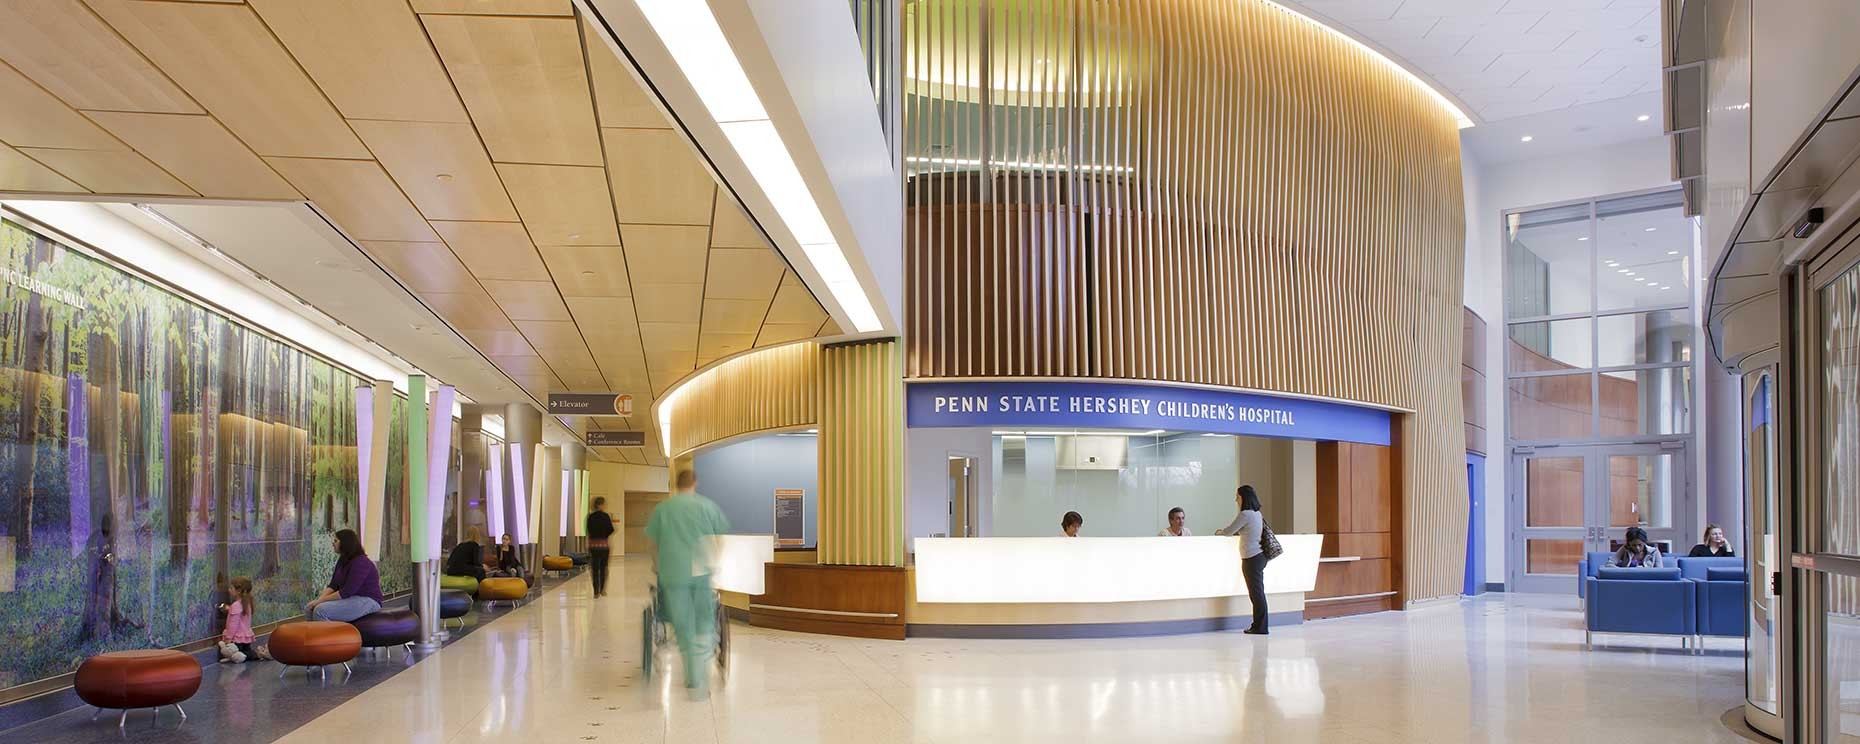 Penn State Milton Hershey Children's Hospital, Hershey, PA. Entrance Lobby  Materials: Corian, plastic laminate, wood, Trespa wall panels Architecture: Payette General Contractor: Quandel Group